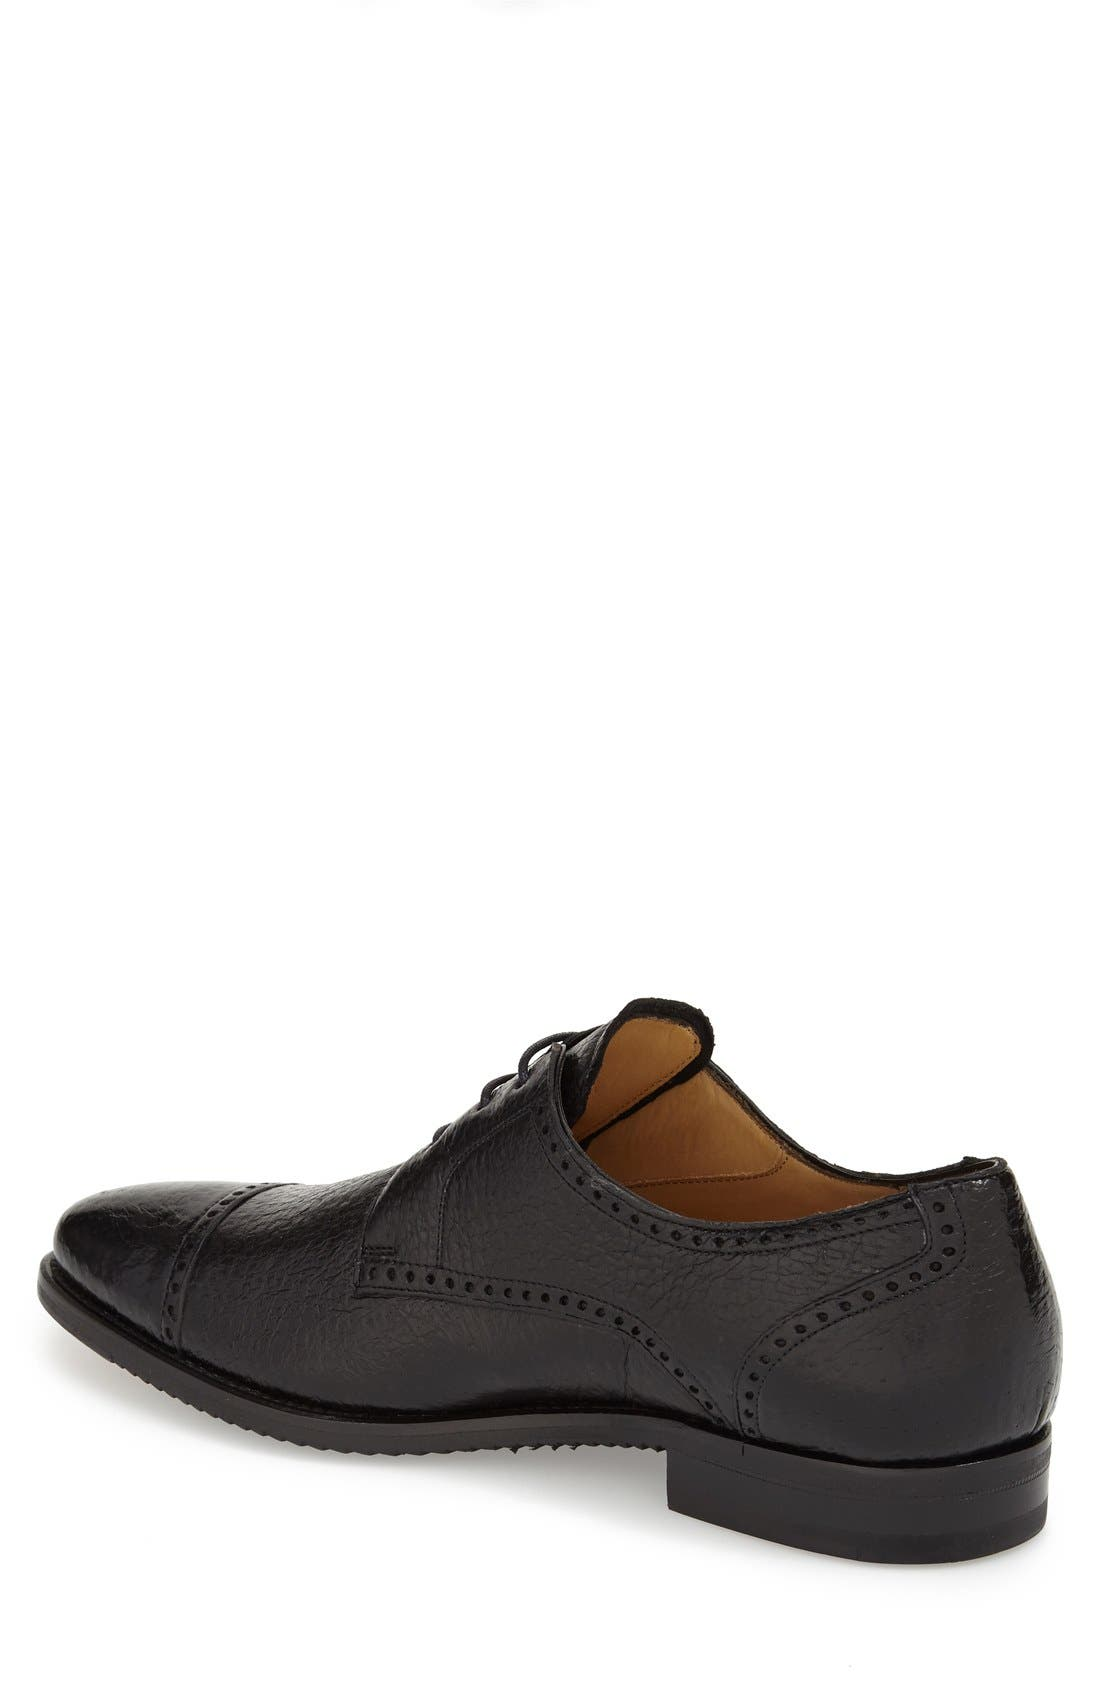 'Capri' Cap Toe Derby,                             Alternate thumbnail 2, color,                             BLACK